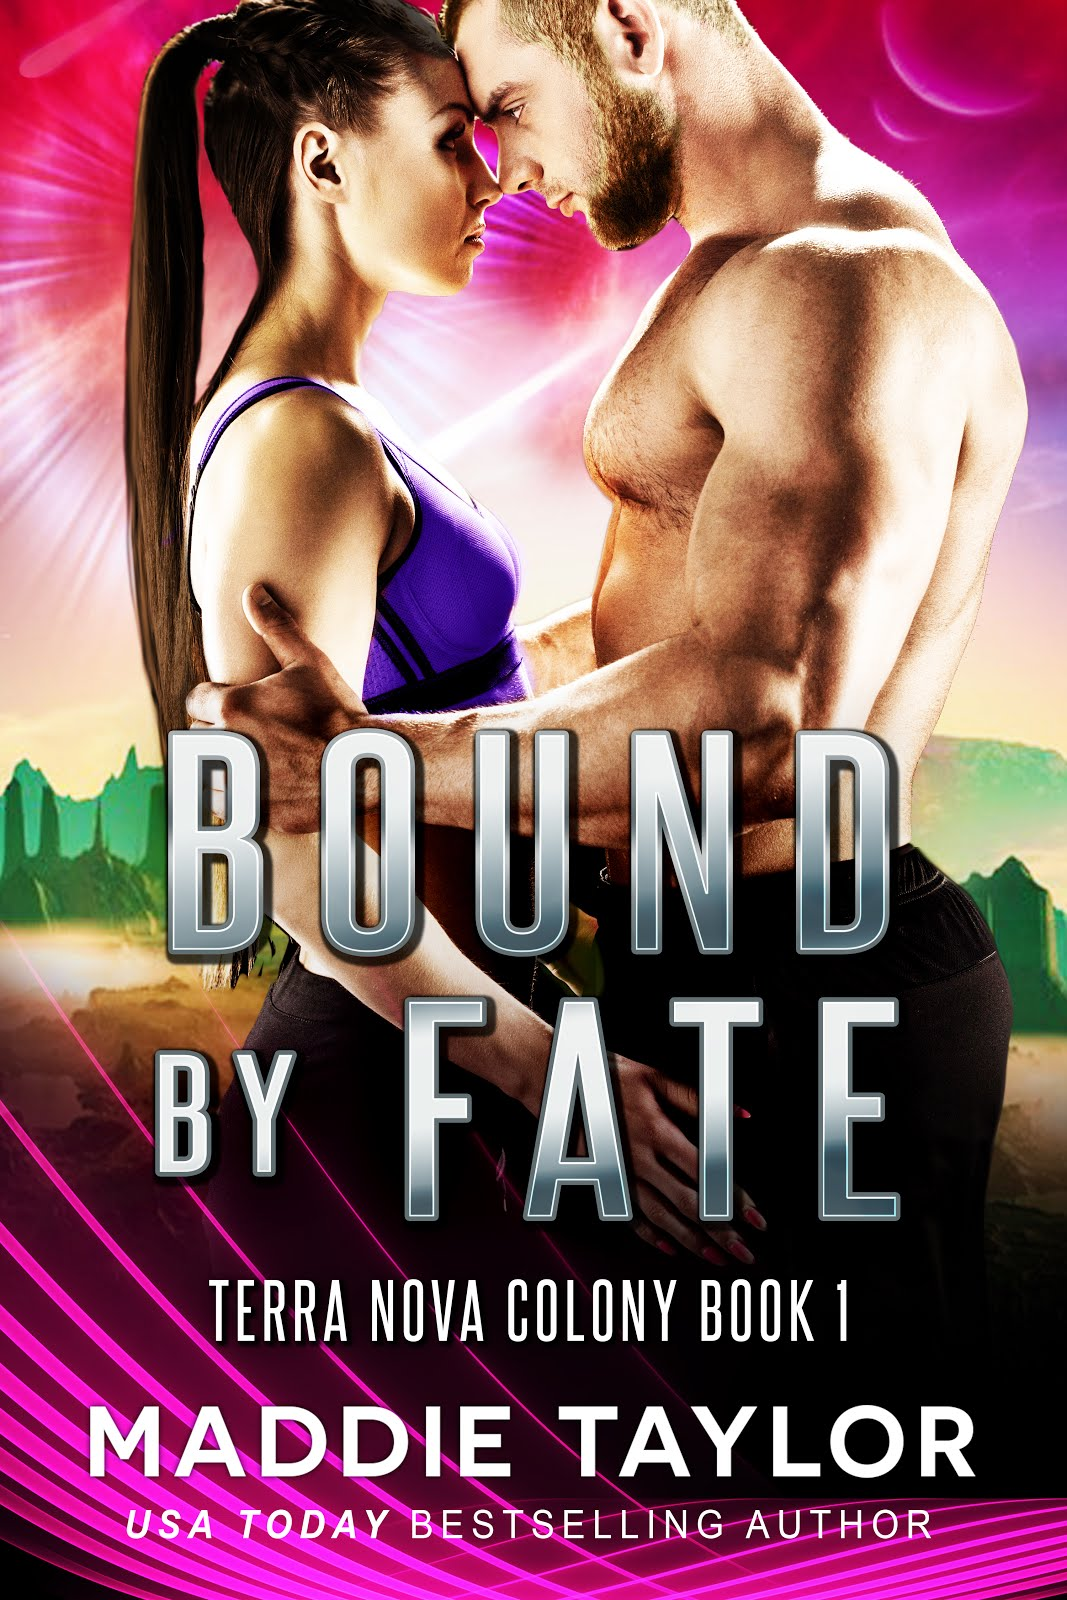 Bound By Fate, Terra Nova Colony Book 1